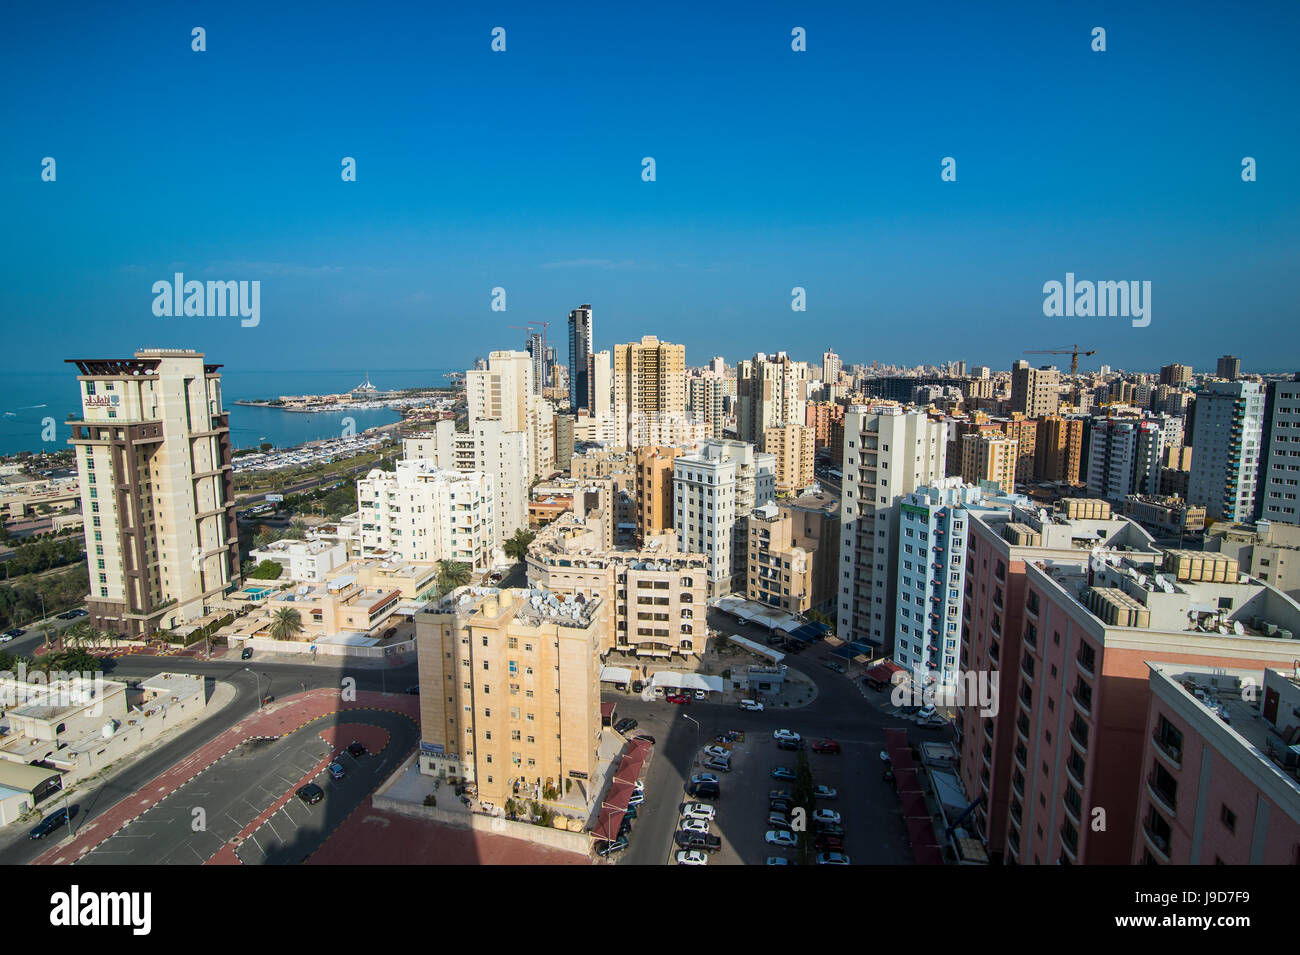 View over Kuwait City, Kuwait, Middle East - Stock Image